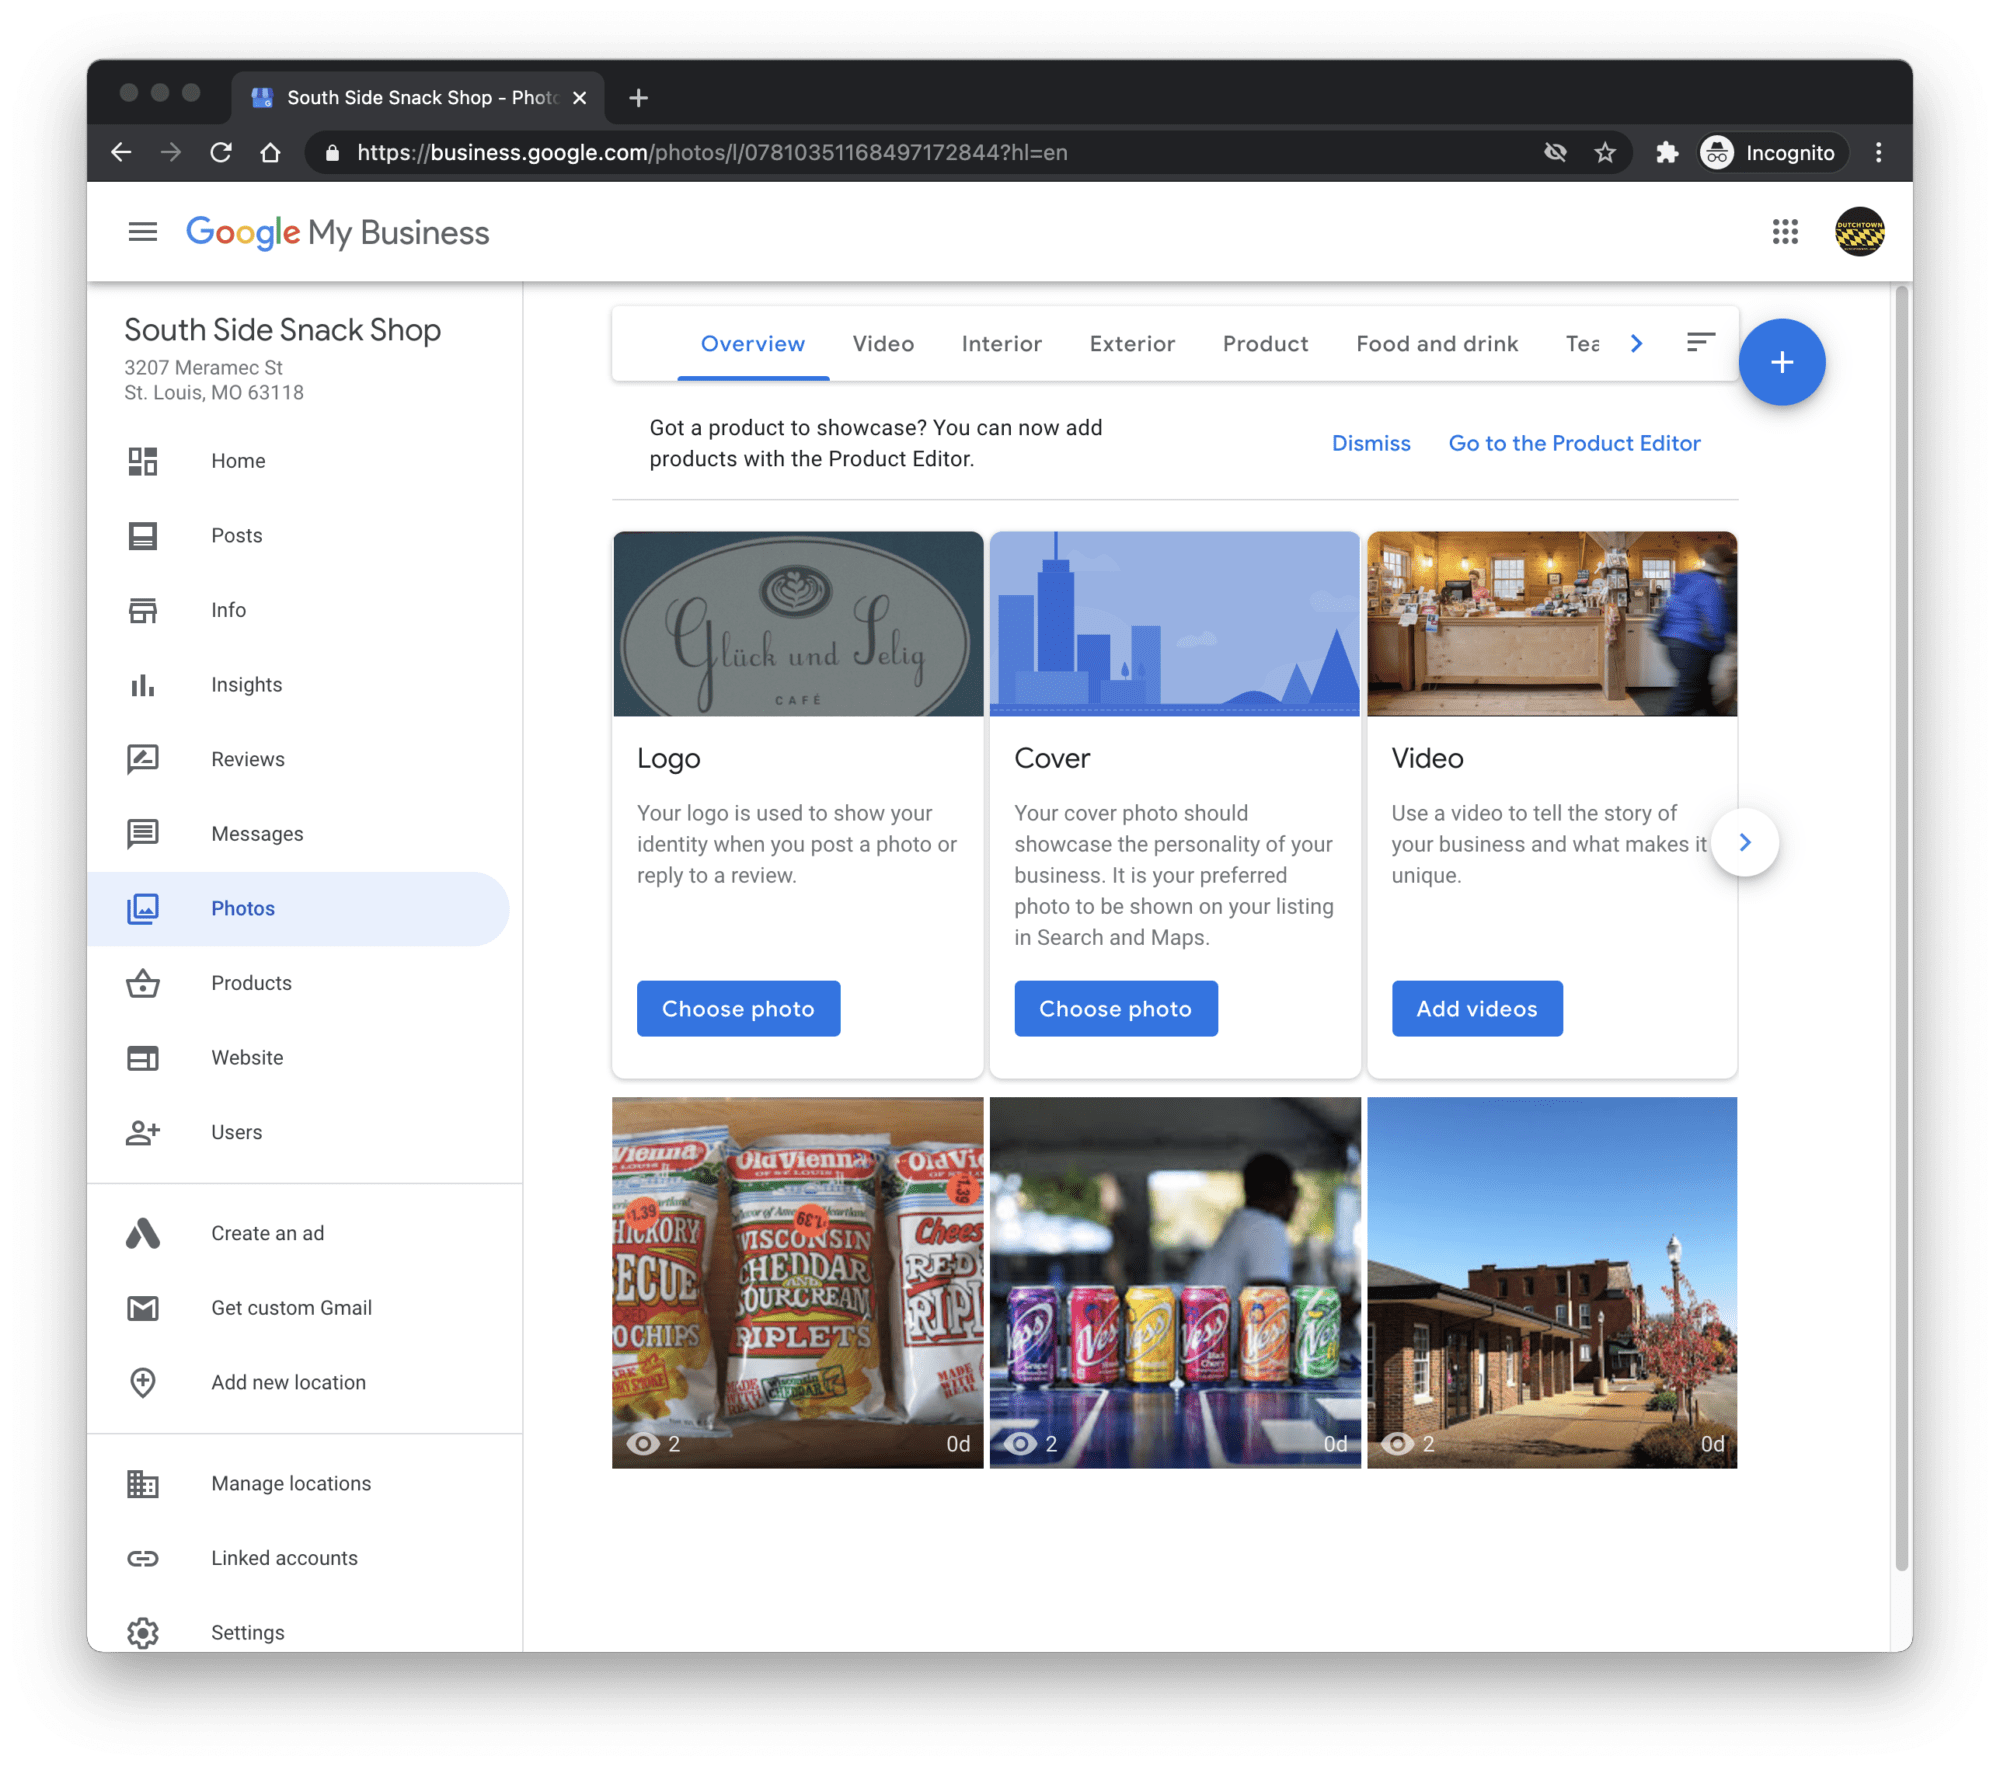 Google My Business dashboard.